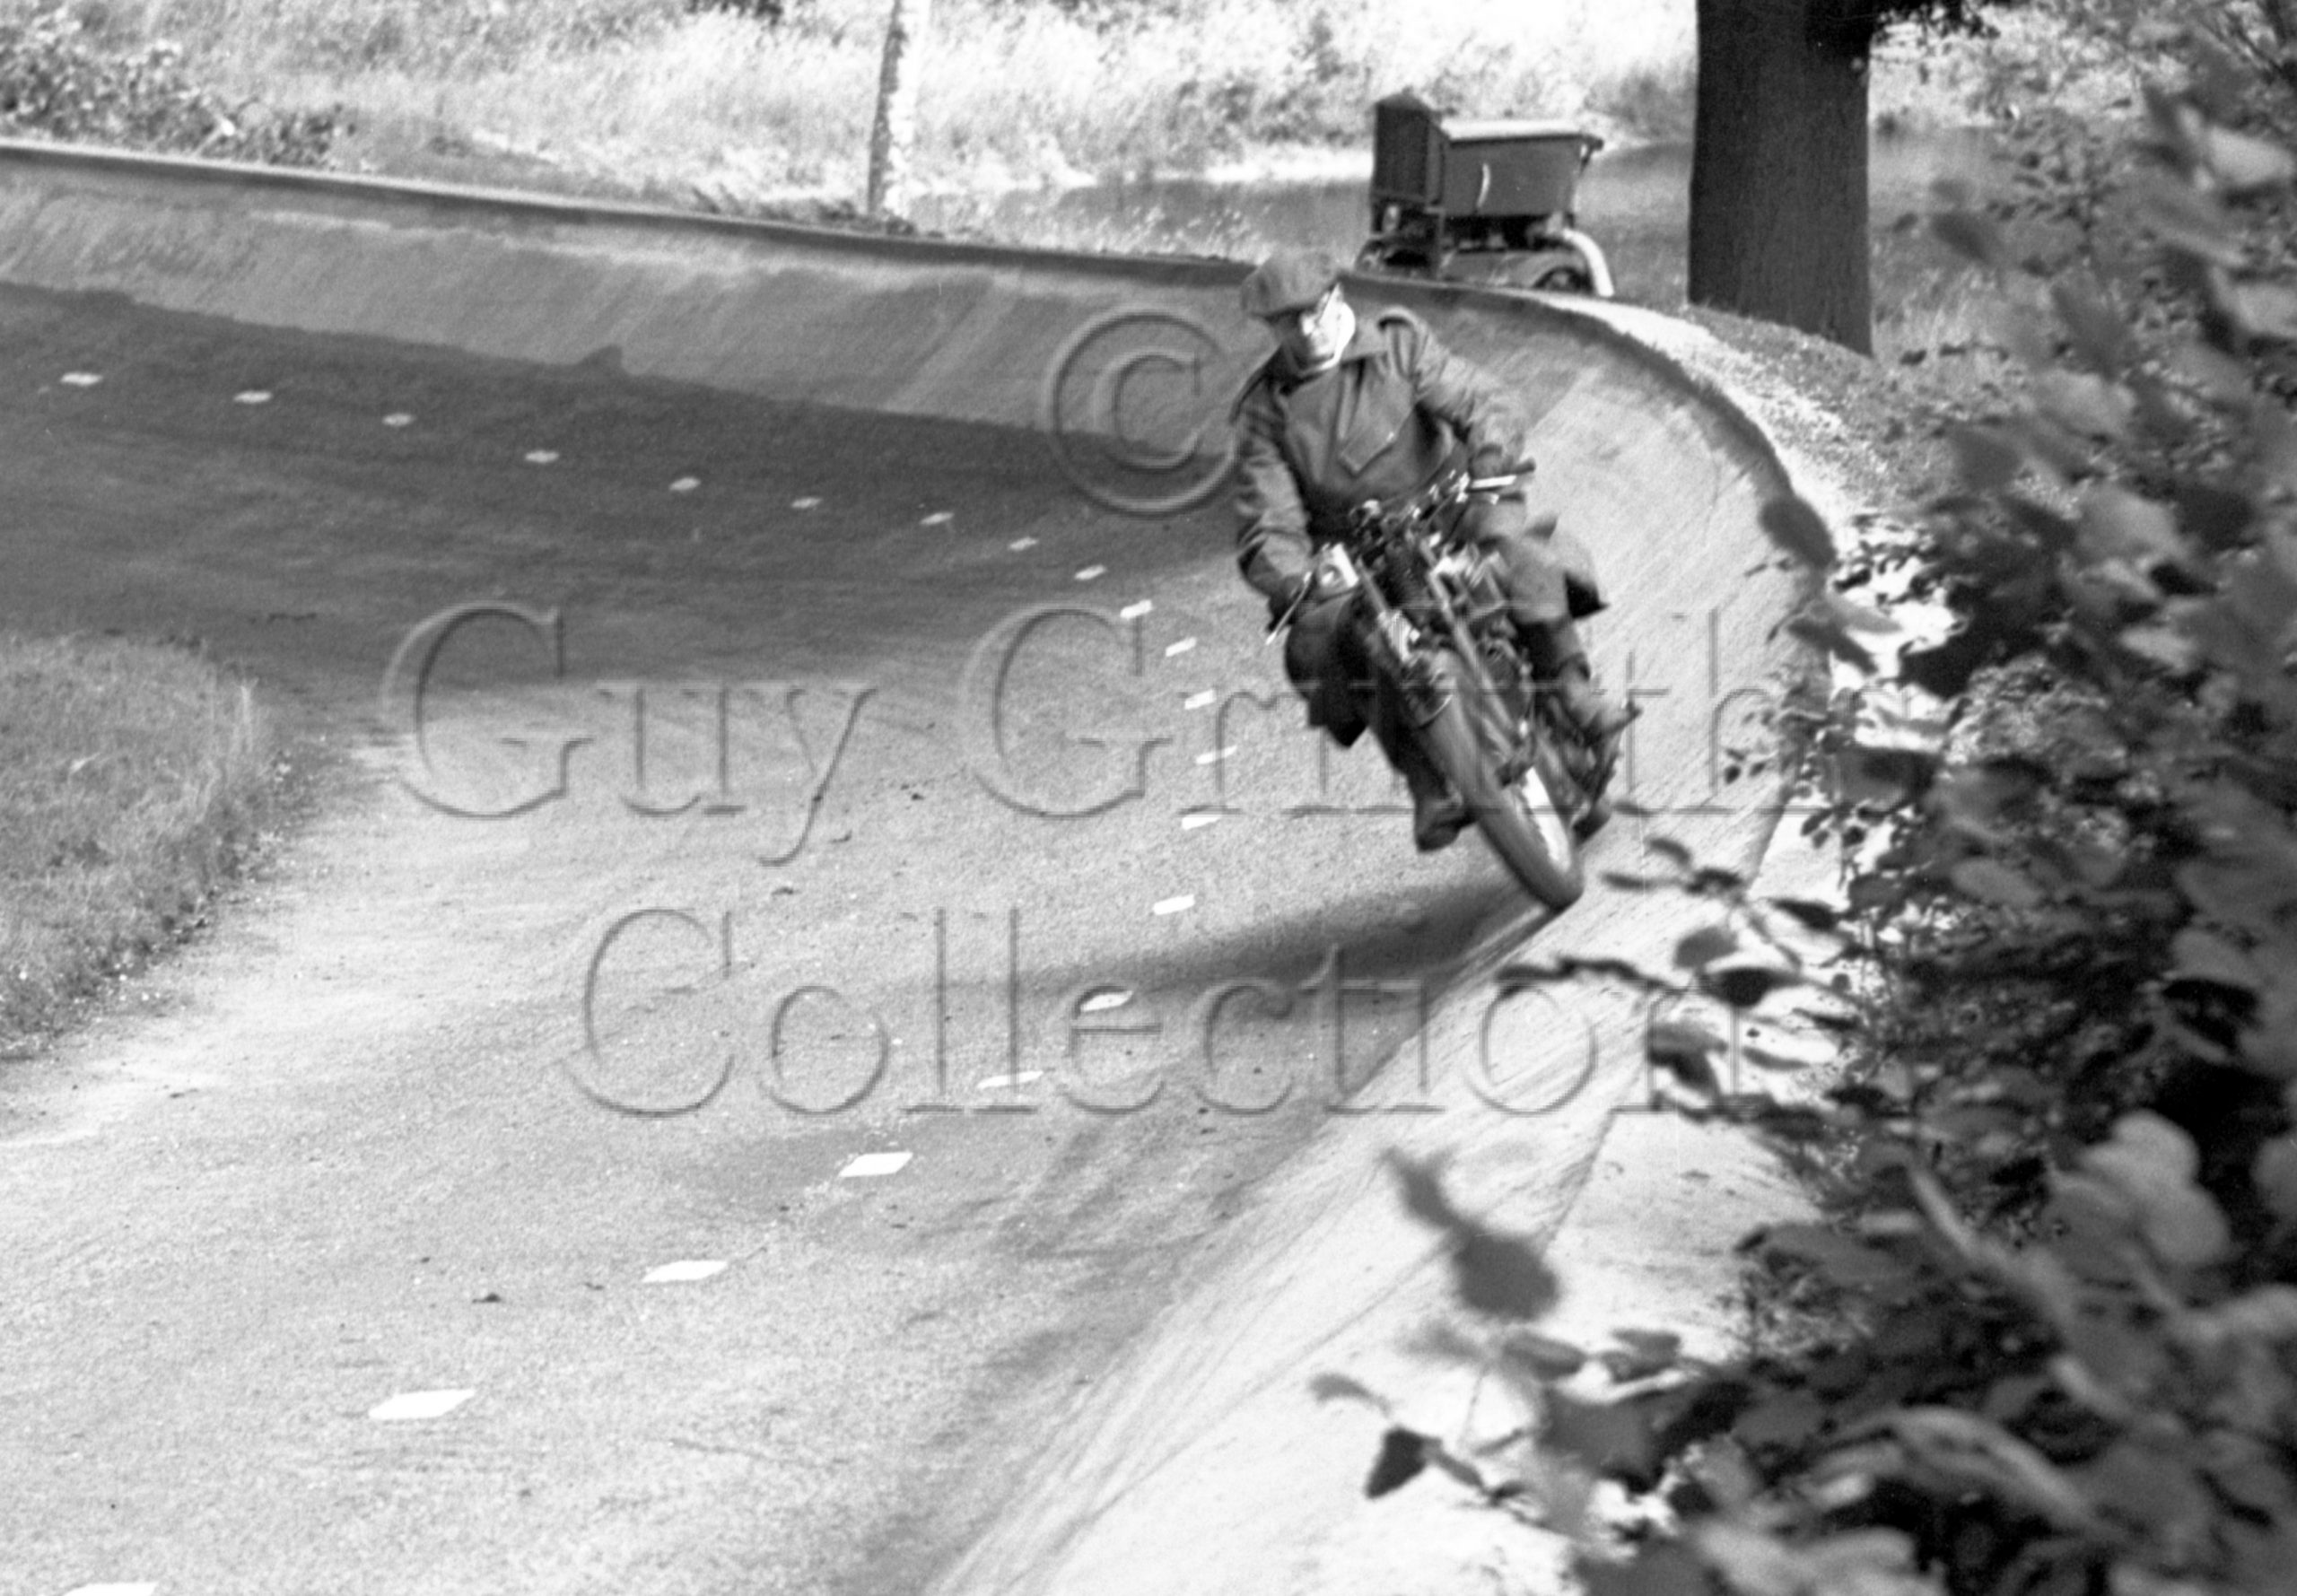 33-943–Motorcycle–Great-Auclum–23-07-1950.jpg - Guy Griffiths Collection